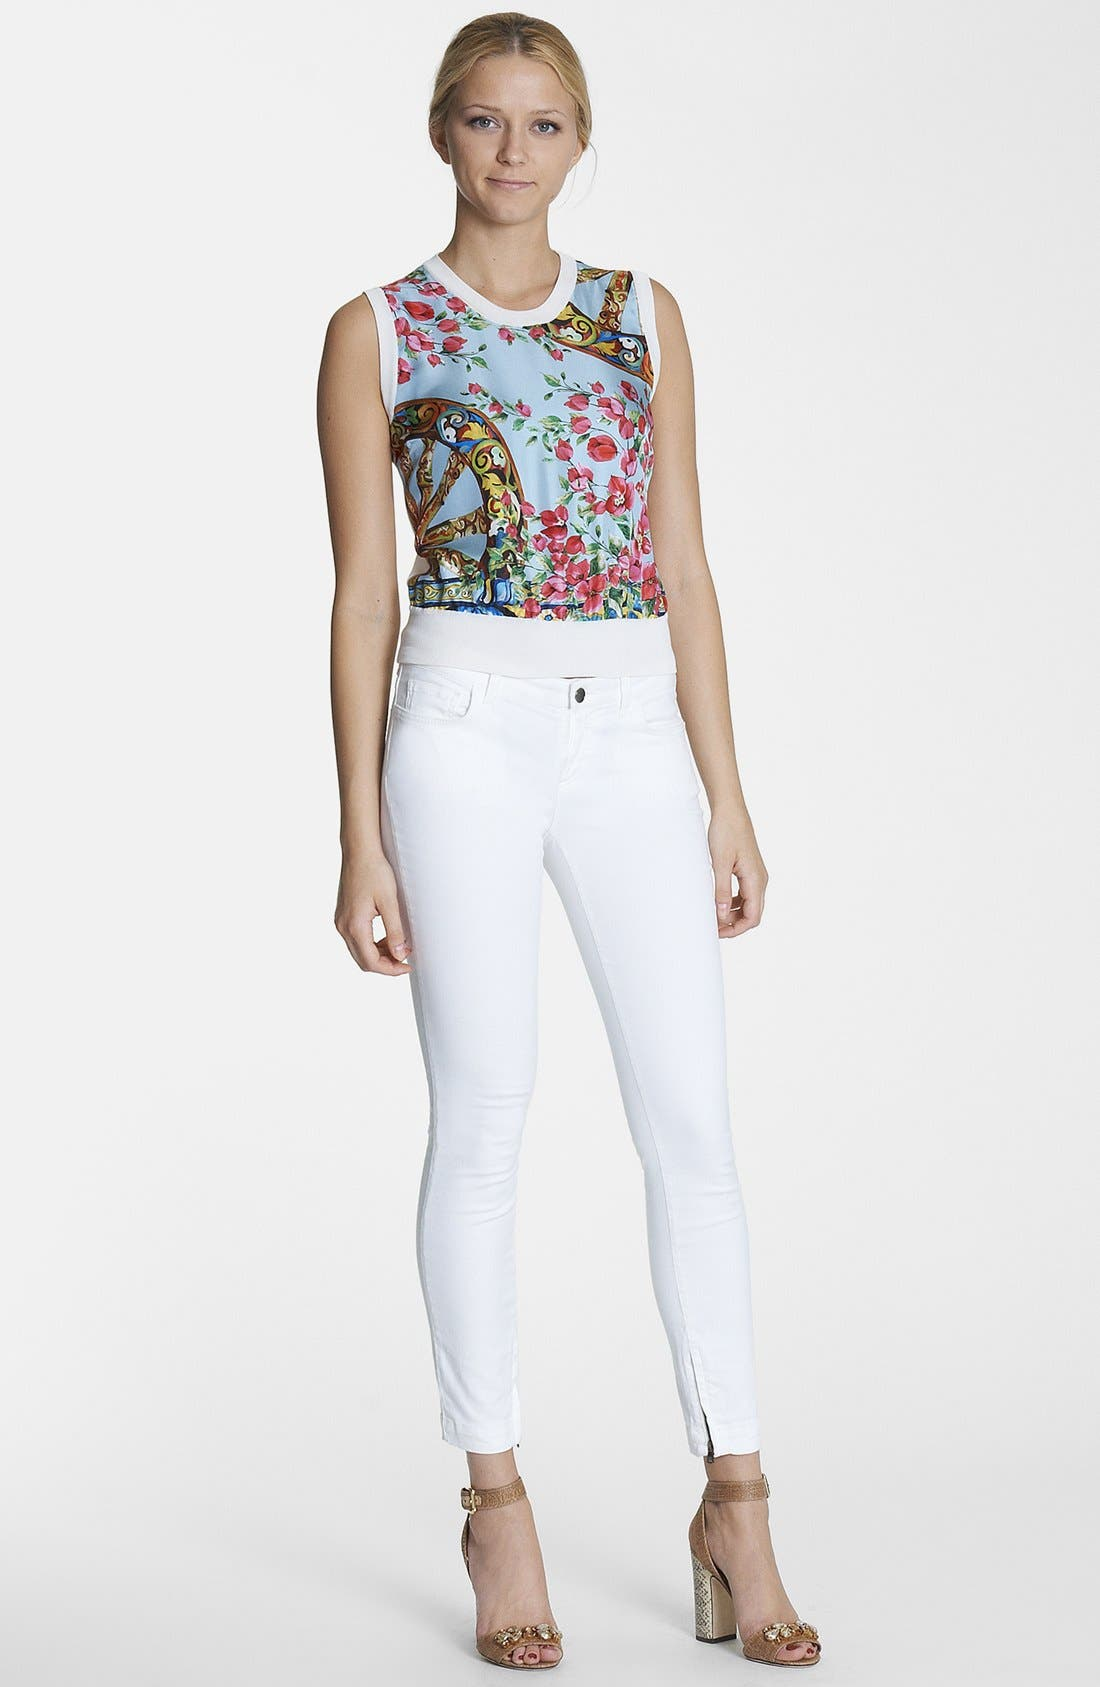 Main Image - Dolce&Gabbana Top & Skinny Jeans